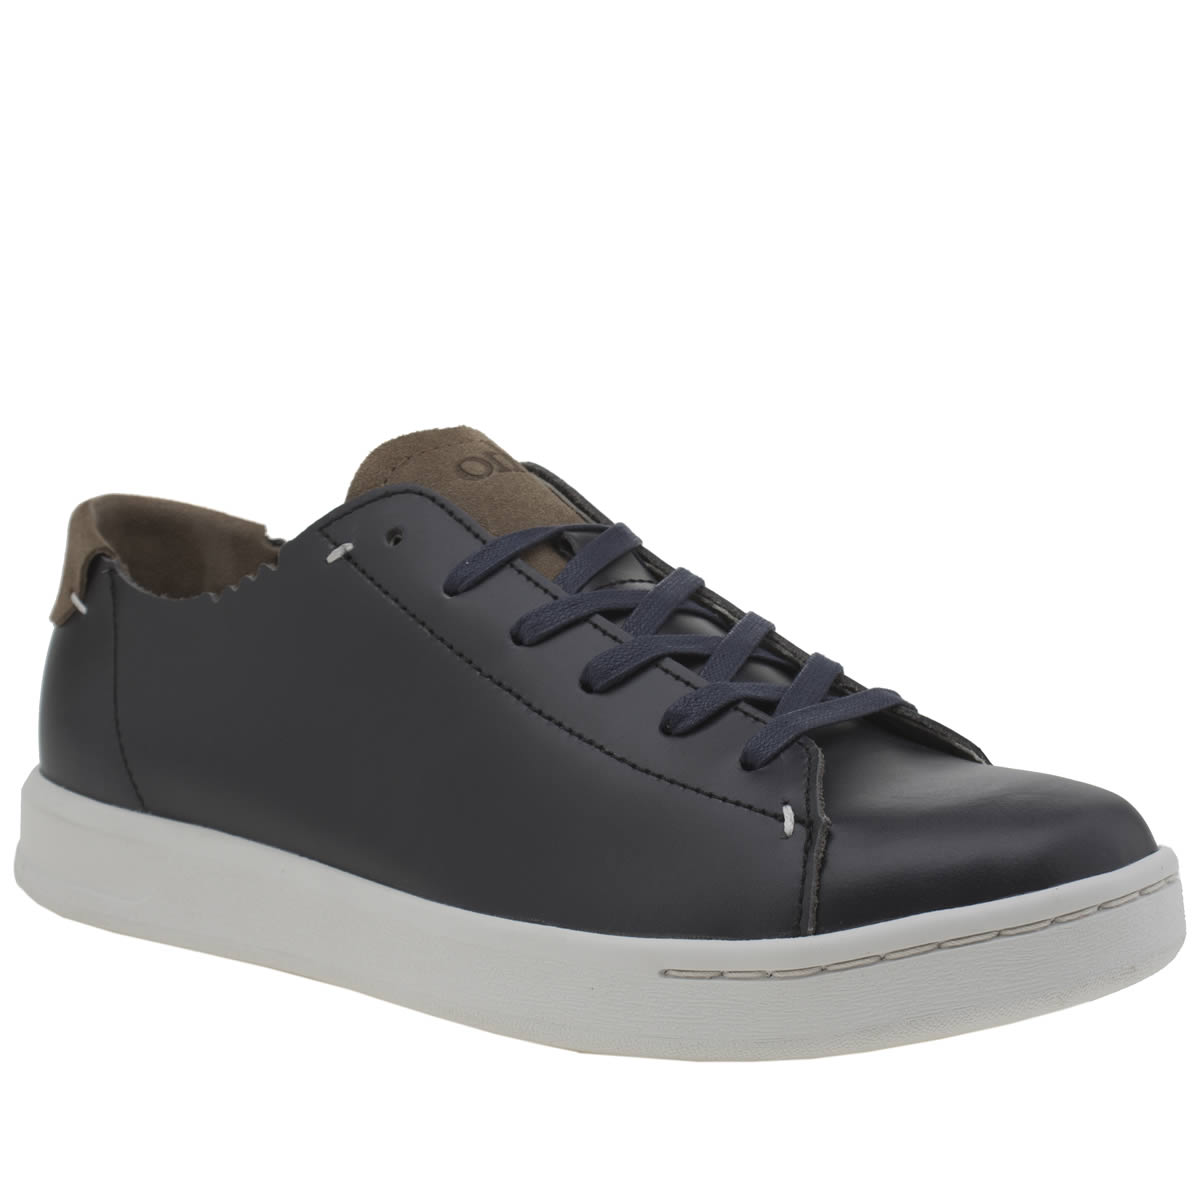 ohw? Ohw? Navy Deacon Mens Shoes